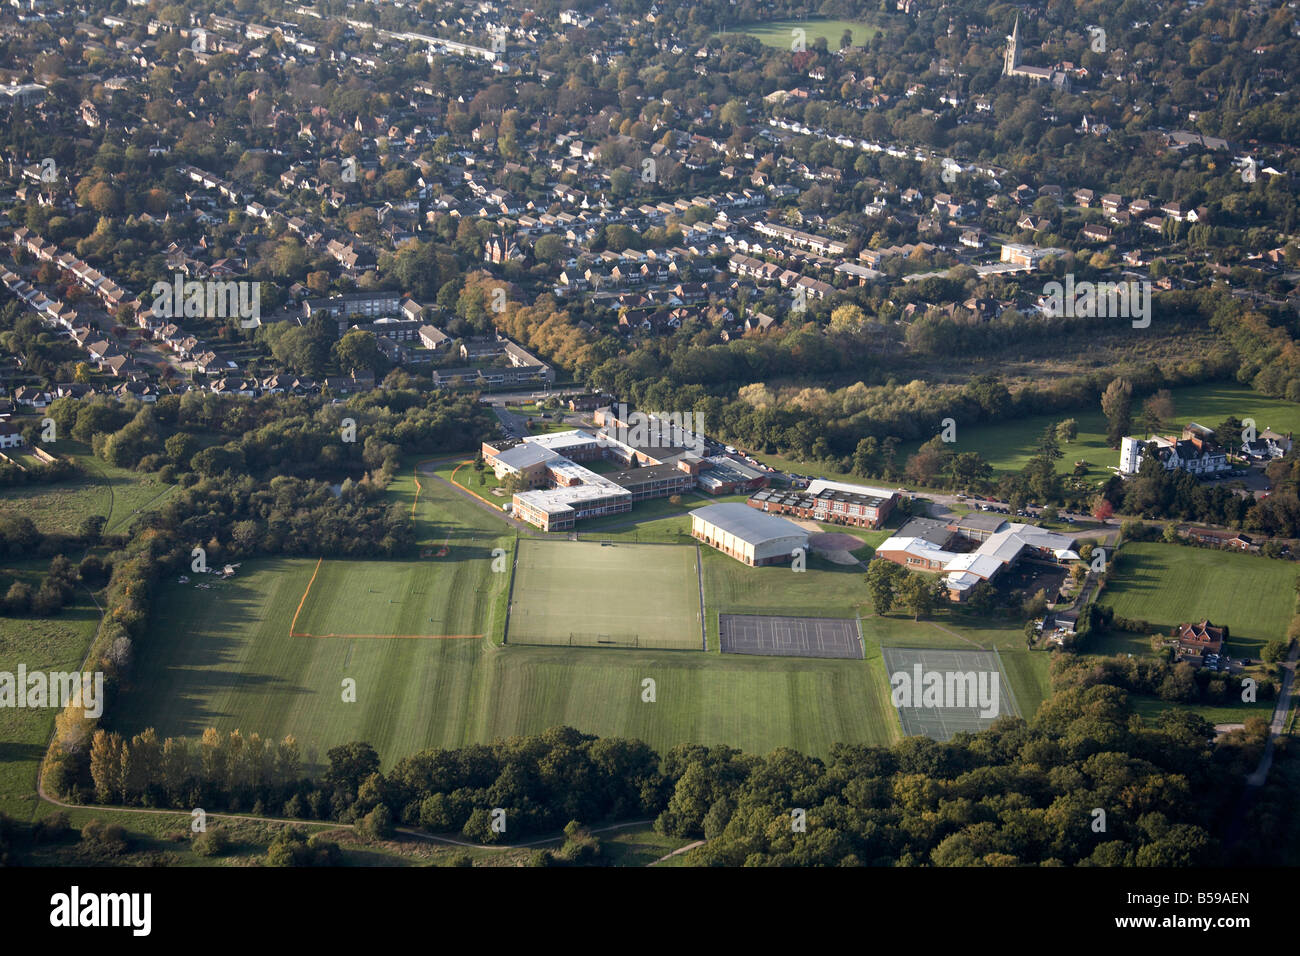 Aerial view north west of Bromley High School playing fields tennis courts Thornet Wood Bromley Greater London BR1 - Stock Image